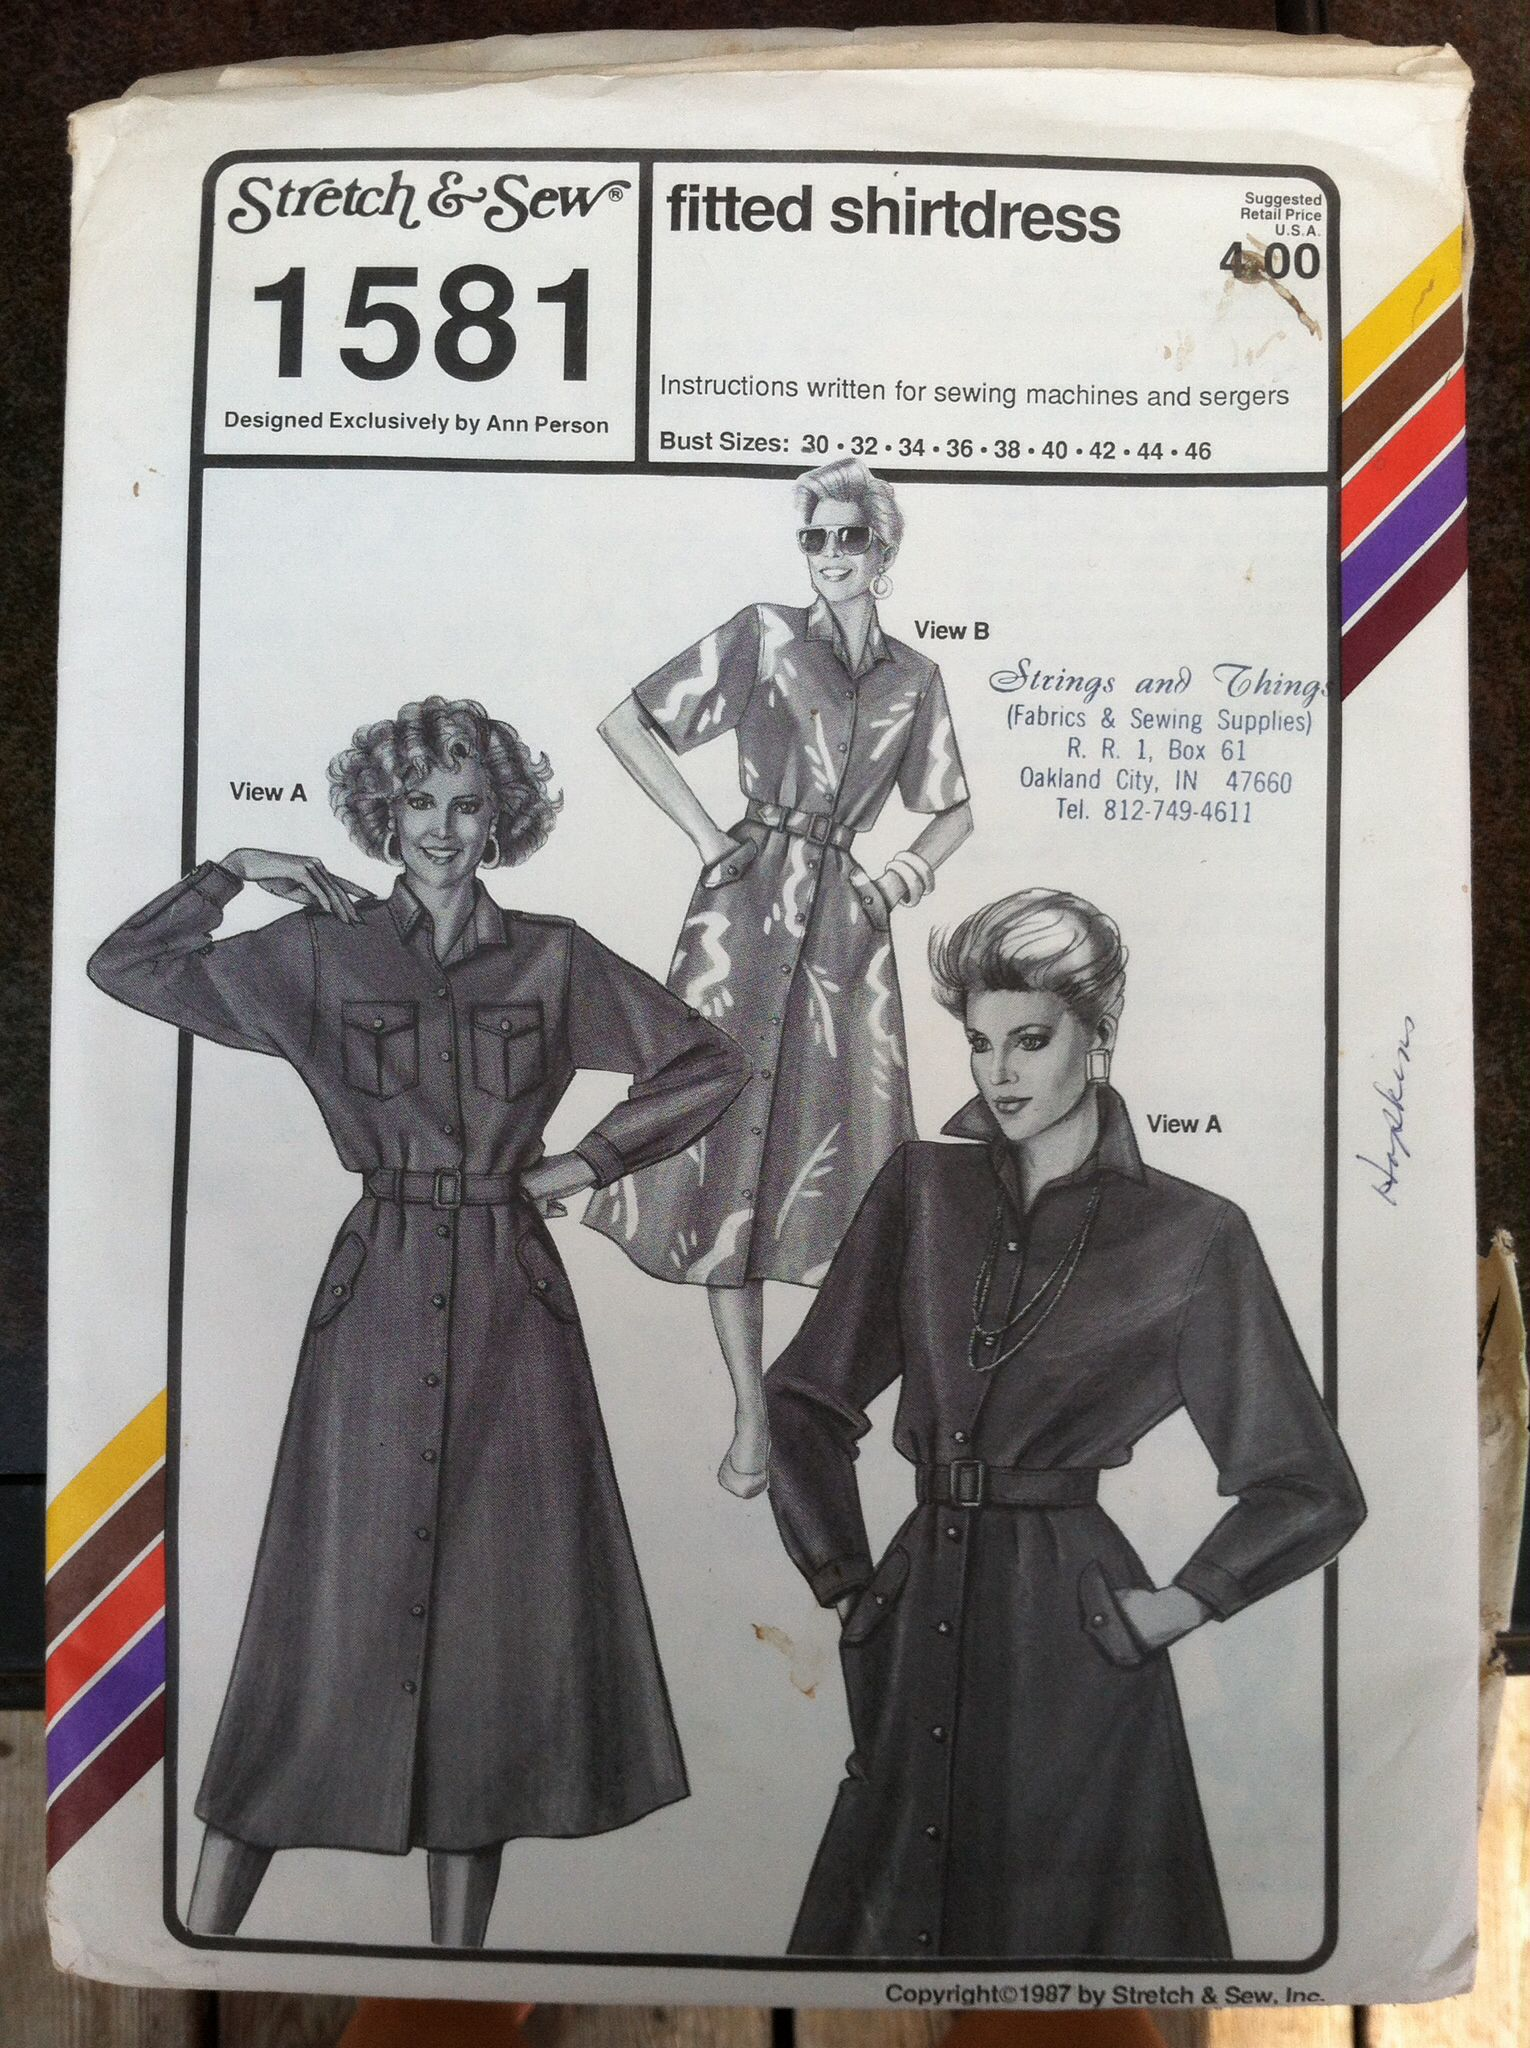 Stretch & Sew 1581 | My Stretch & Sew Patterns | Pinterest | Sew ...